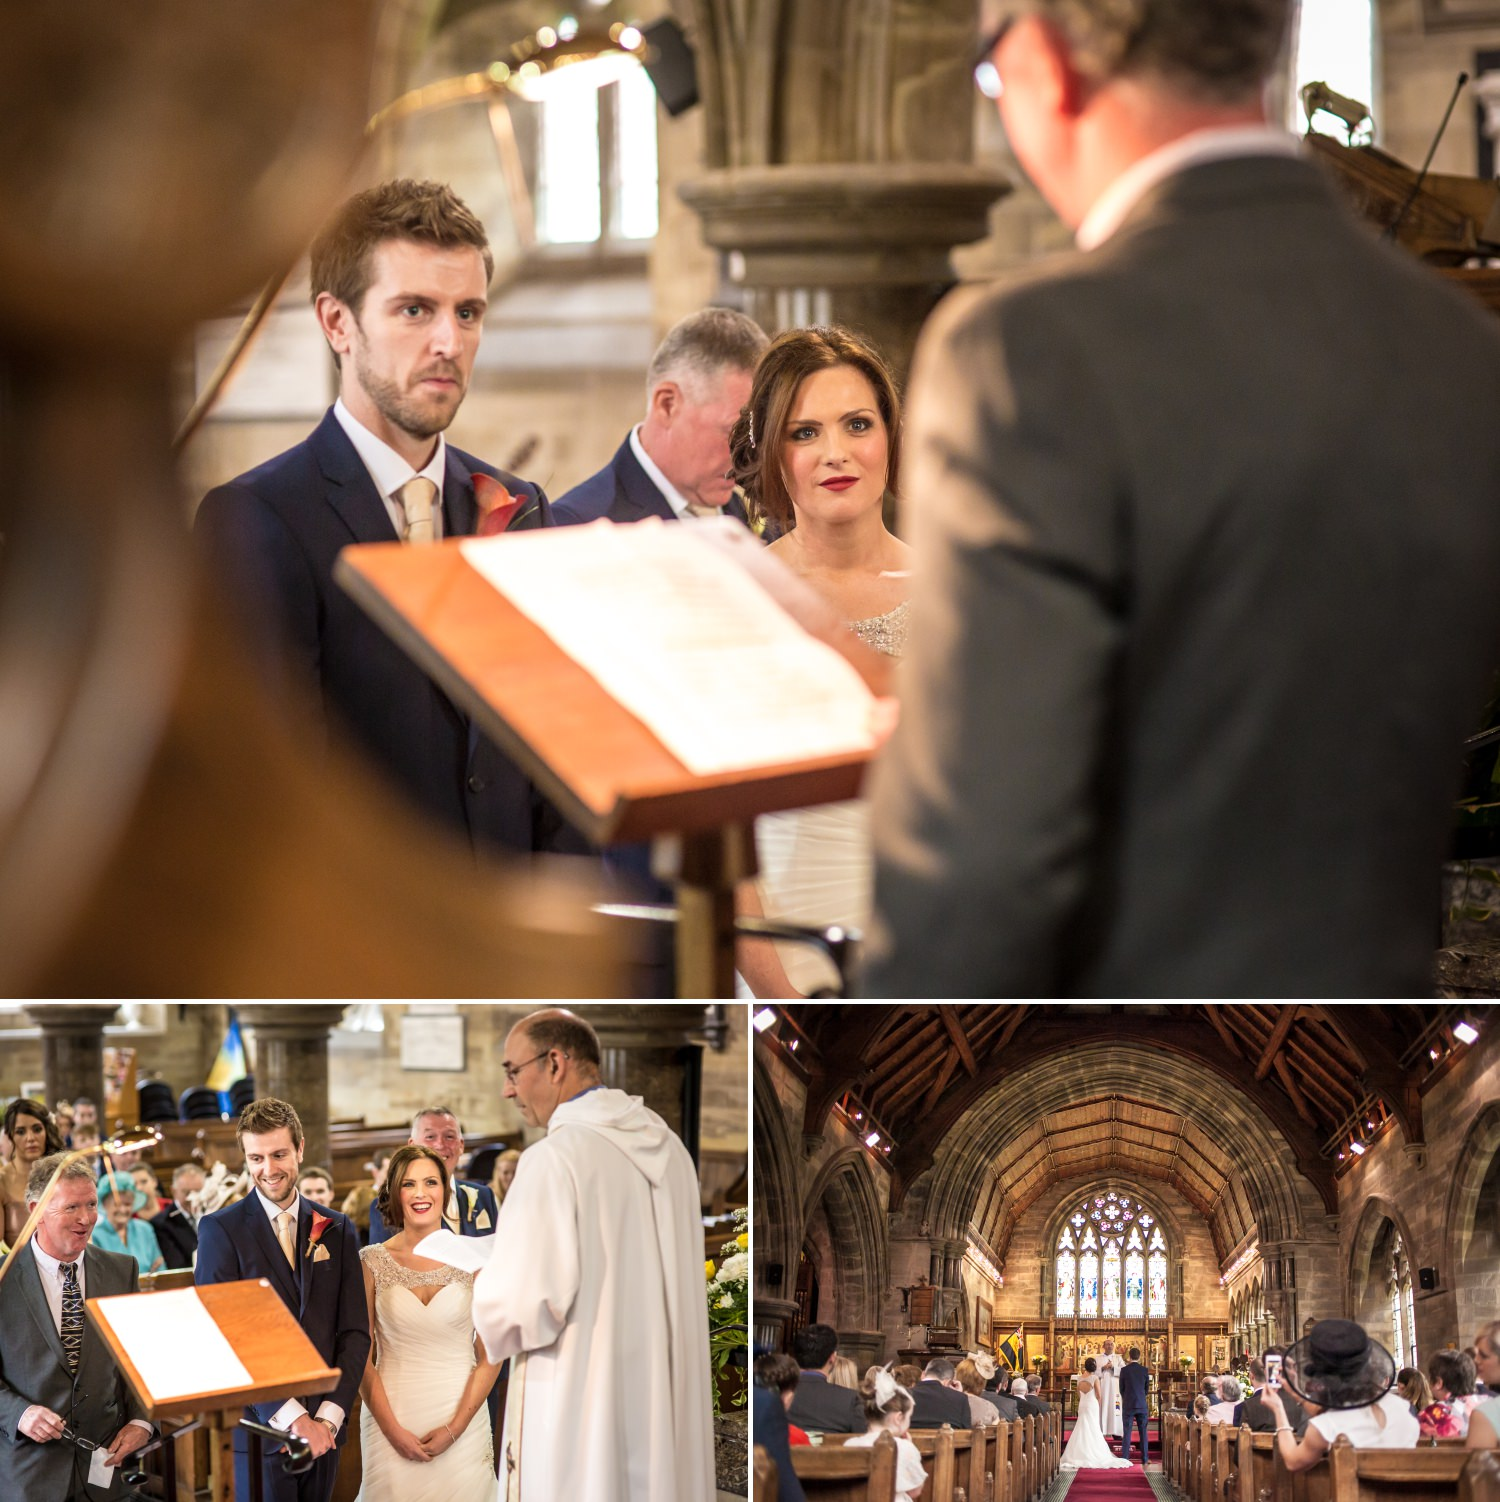 Wedding Photography of the wedding ceremony in a church in North Wales